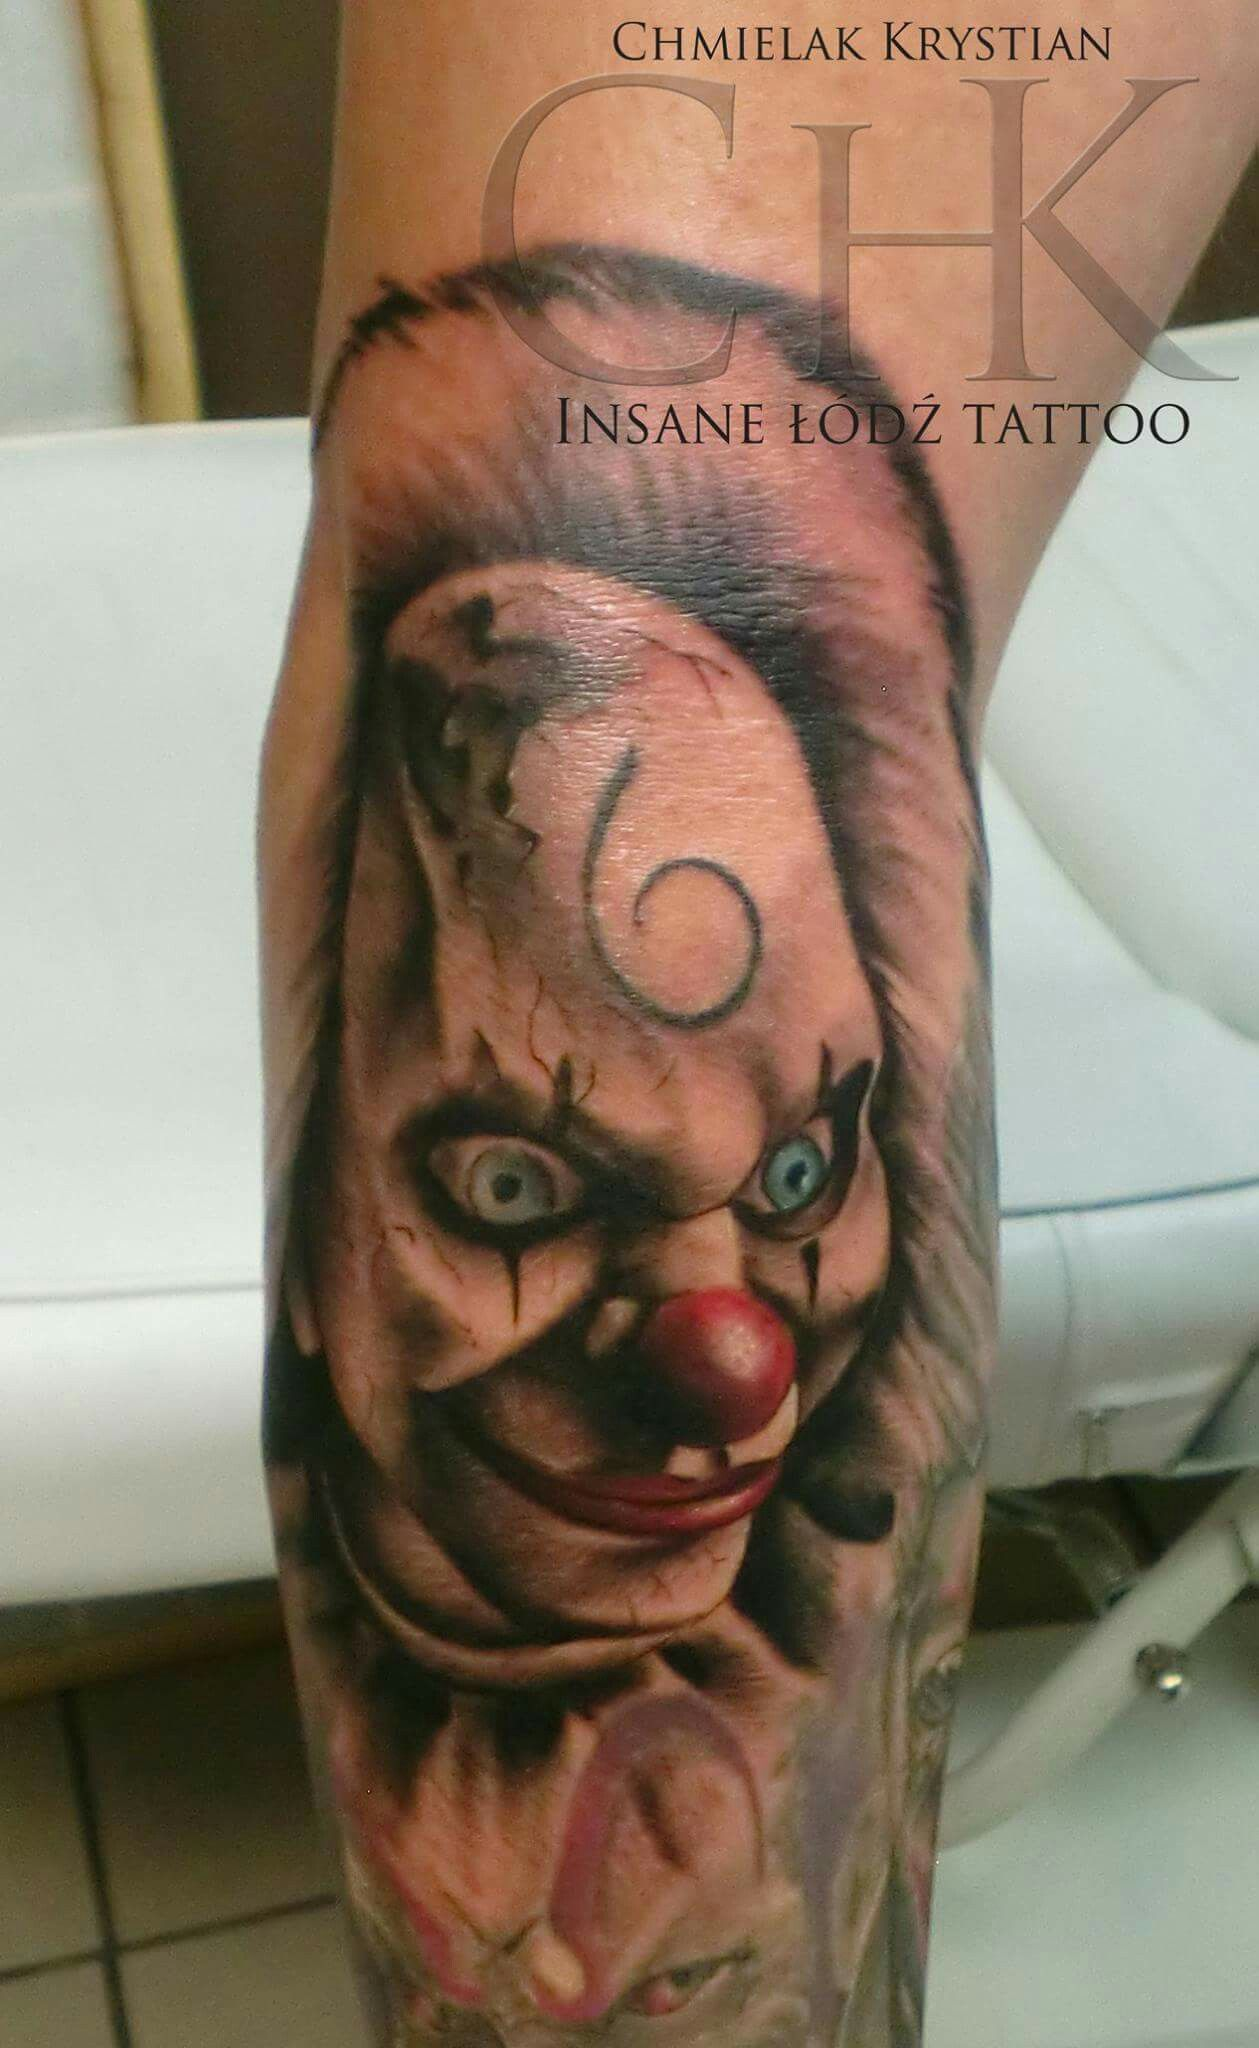 Scery Clown Tattooinsane łódź Tattoo Krystian Chmielak